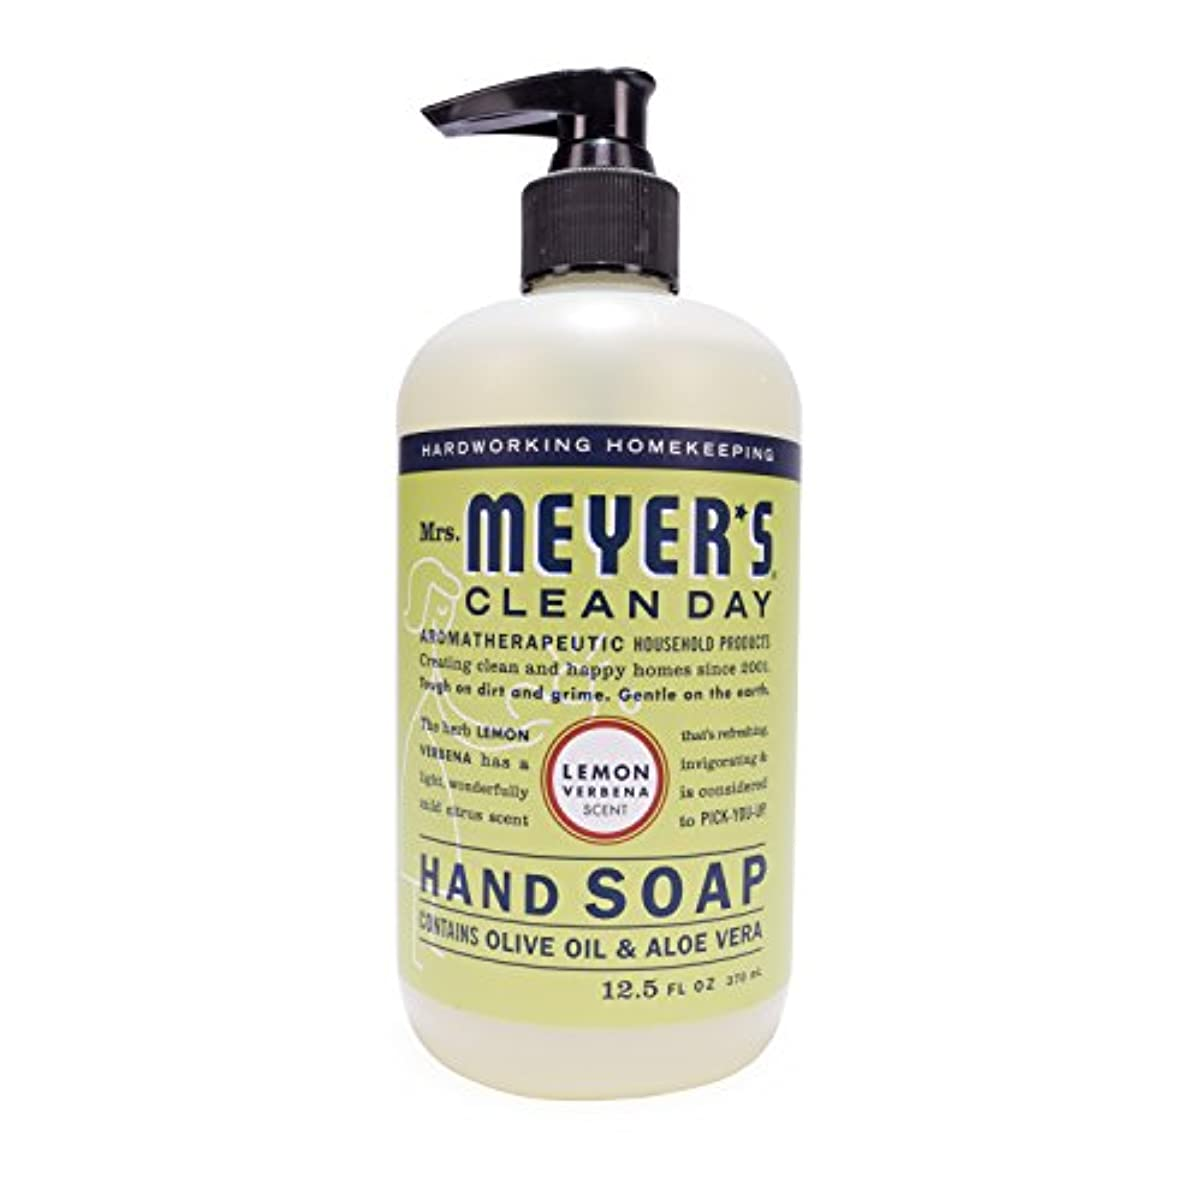 会話協定半導体Mrs. Meyer's Hand Soap Lemon Verbena, 12.5 Fluid Ounce (Pack of 3) by Mrs. Meyer's Clean Day